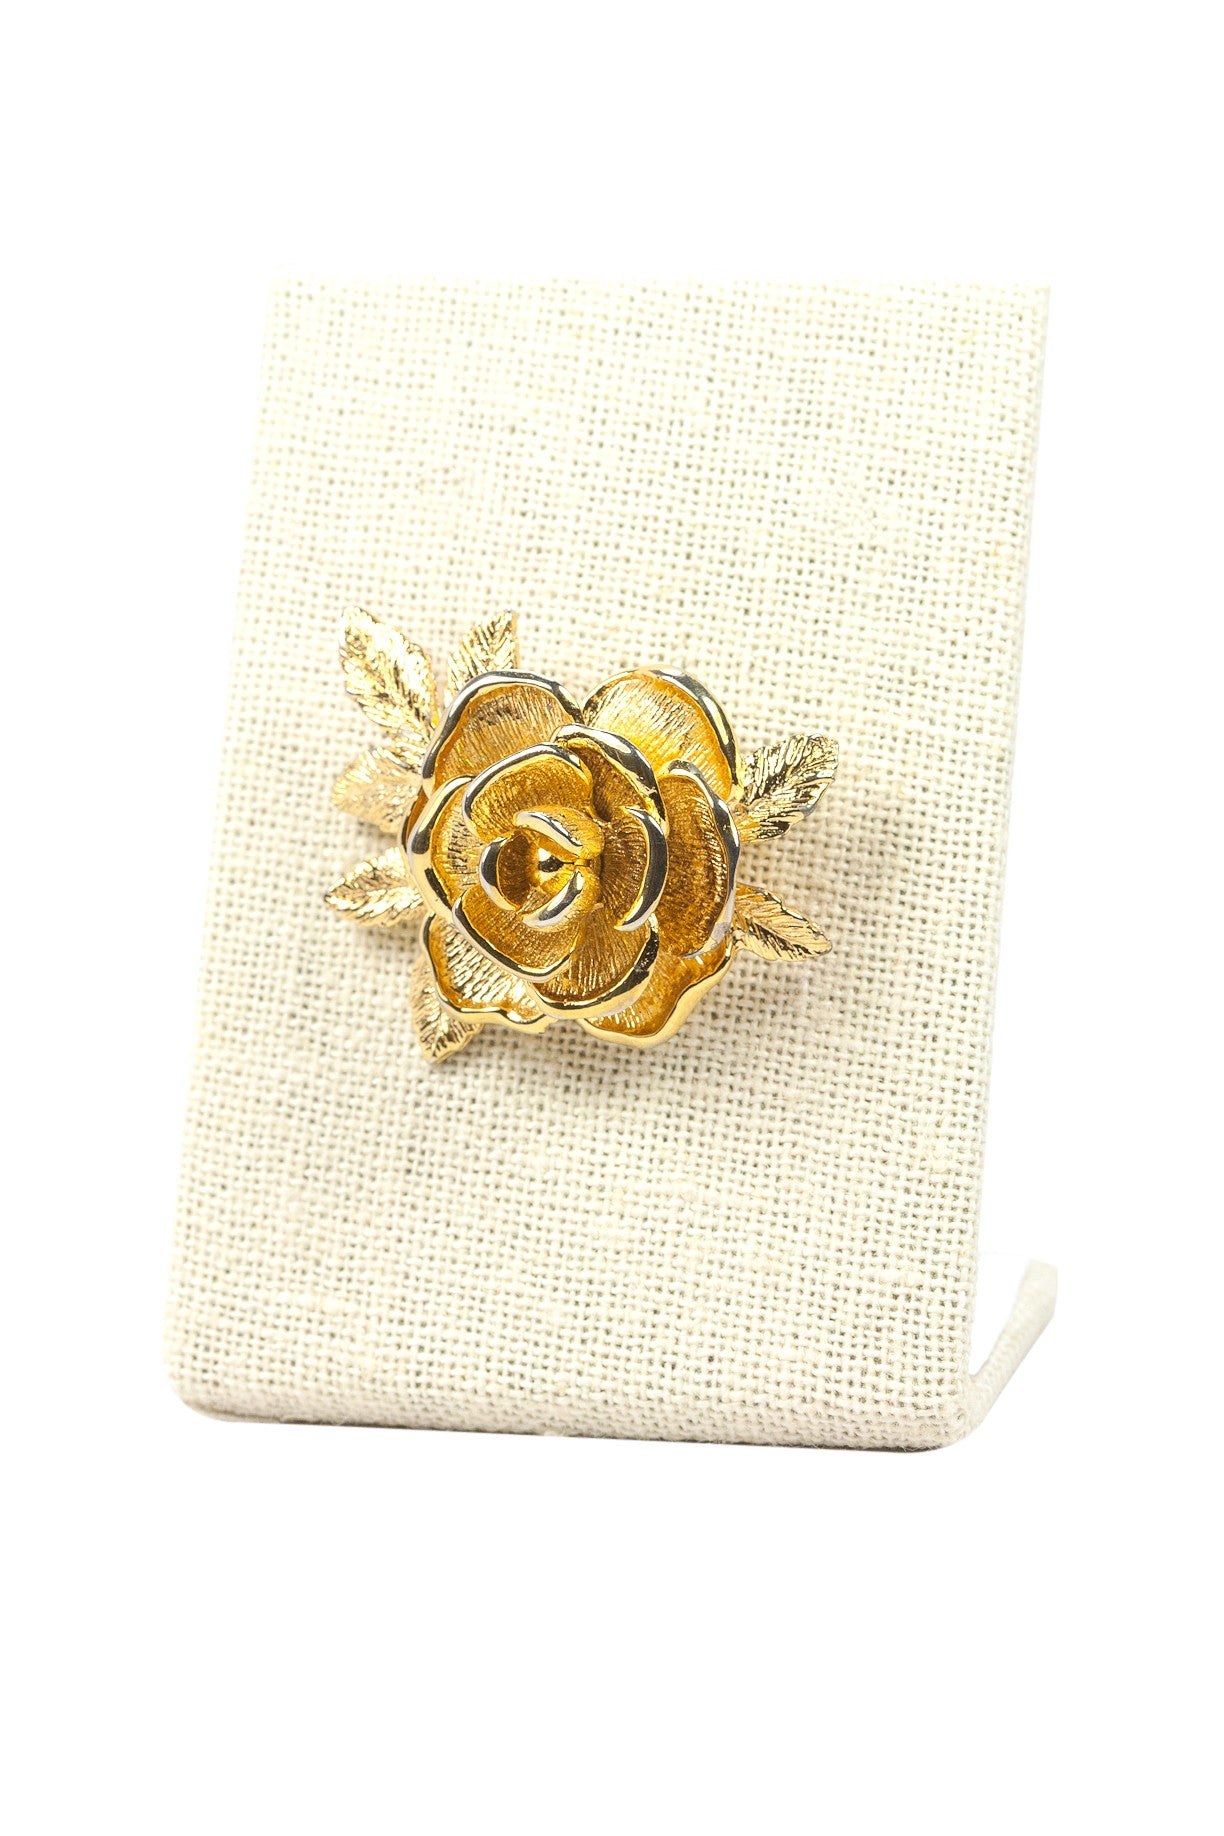 60's__Sarah Coventry__Rose Brooch